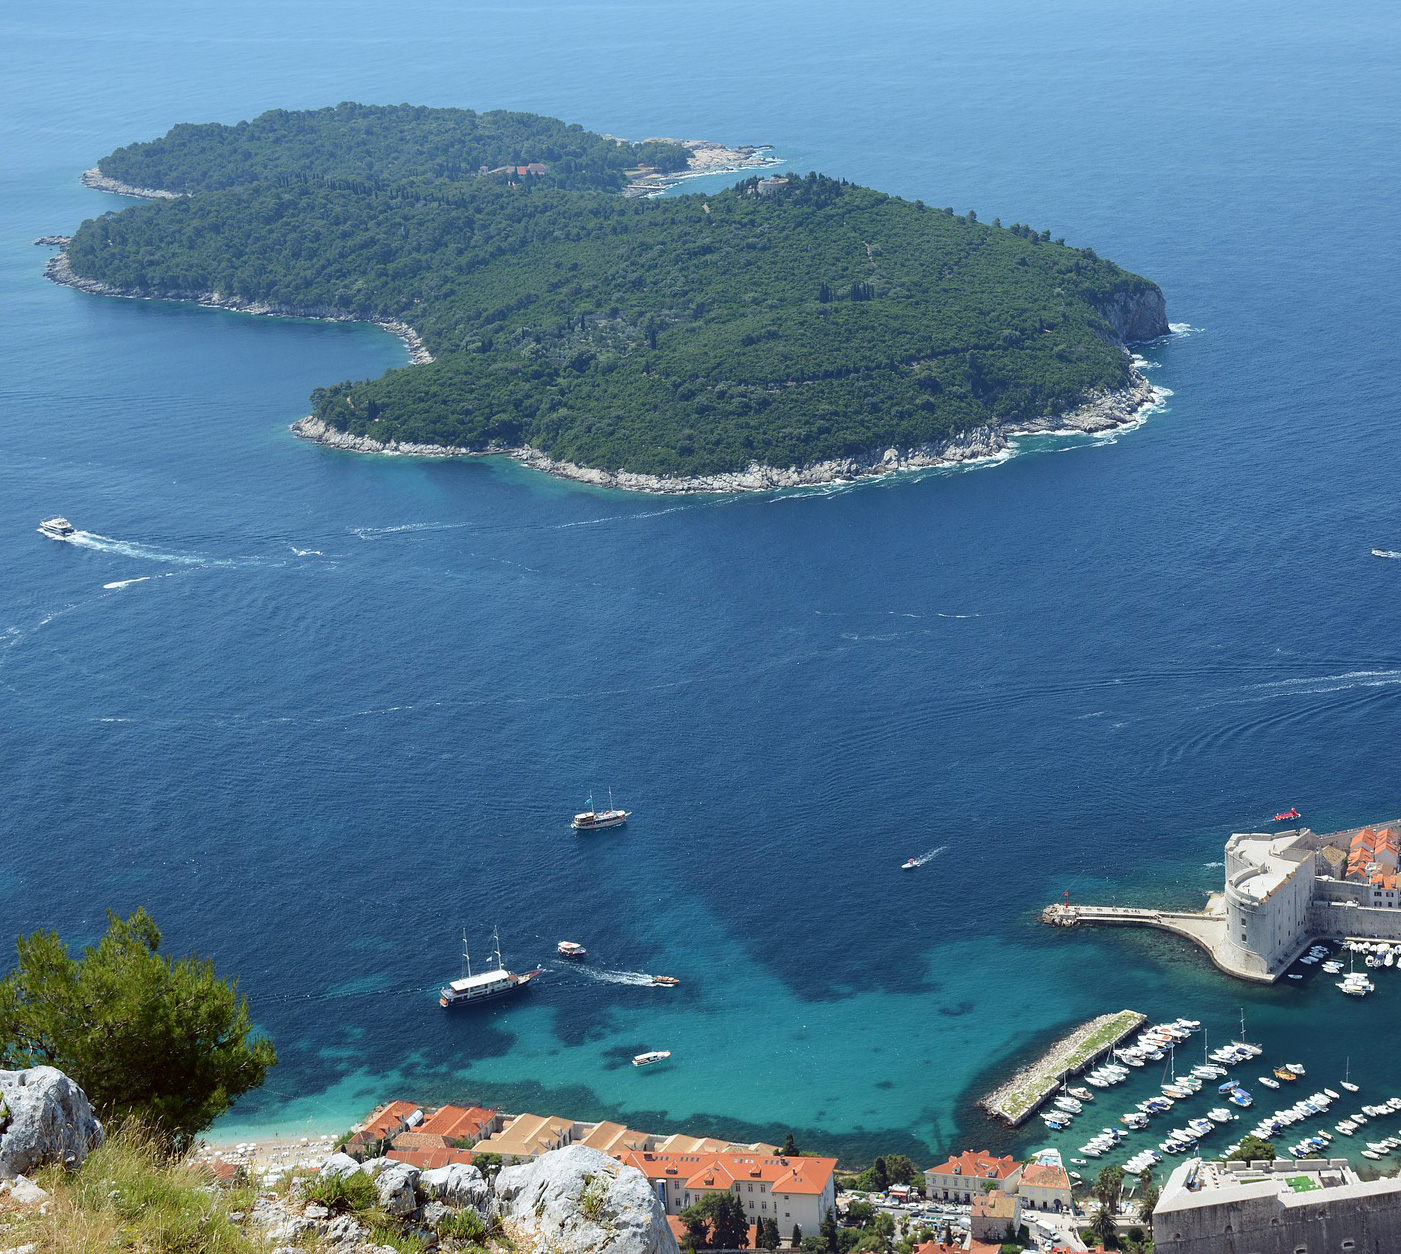 Women's Travel Club Croatia Tour - Lokrum Island